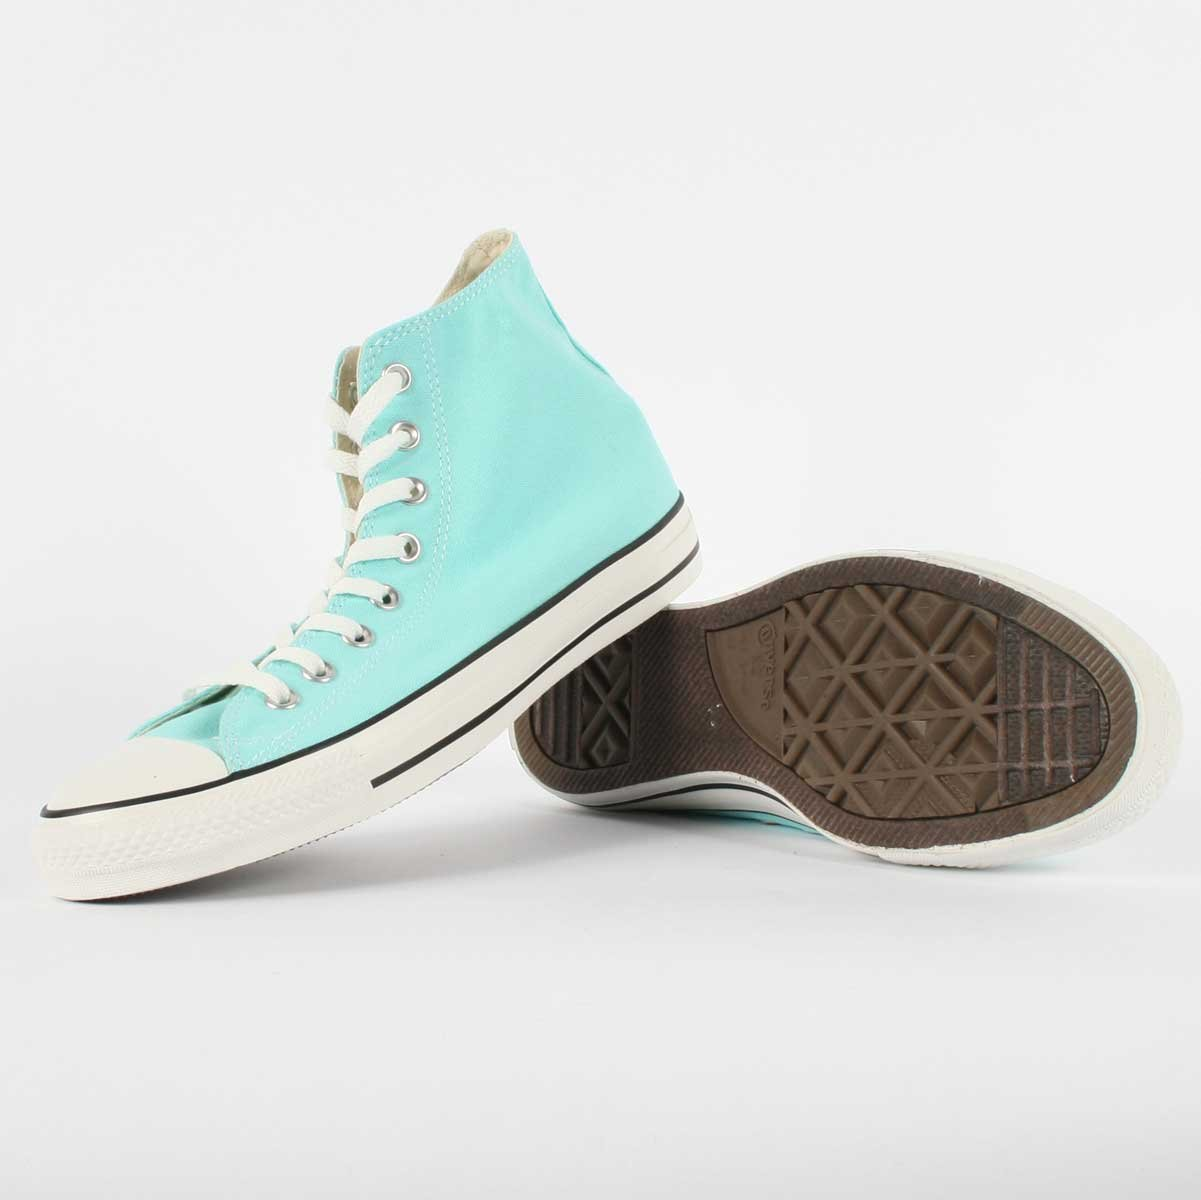 Converse Chuck Taylor All Star High Top Sneakers 136561F Beach Glass 7 M US